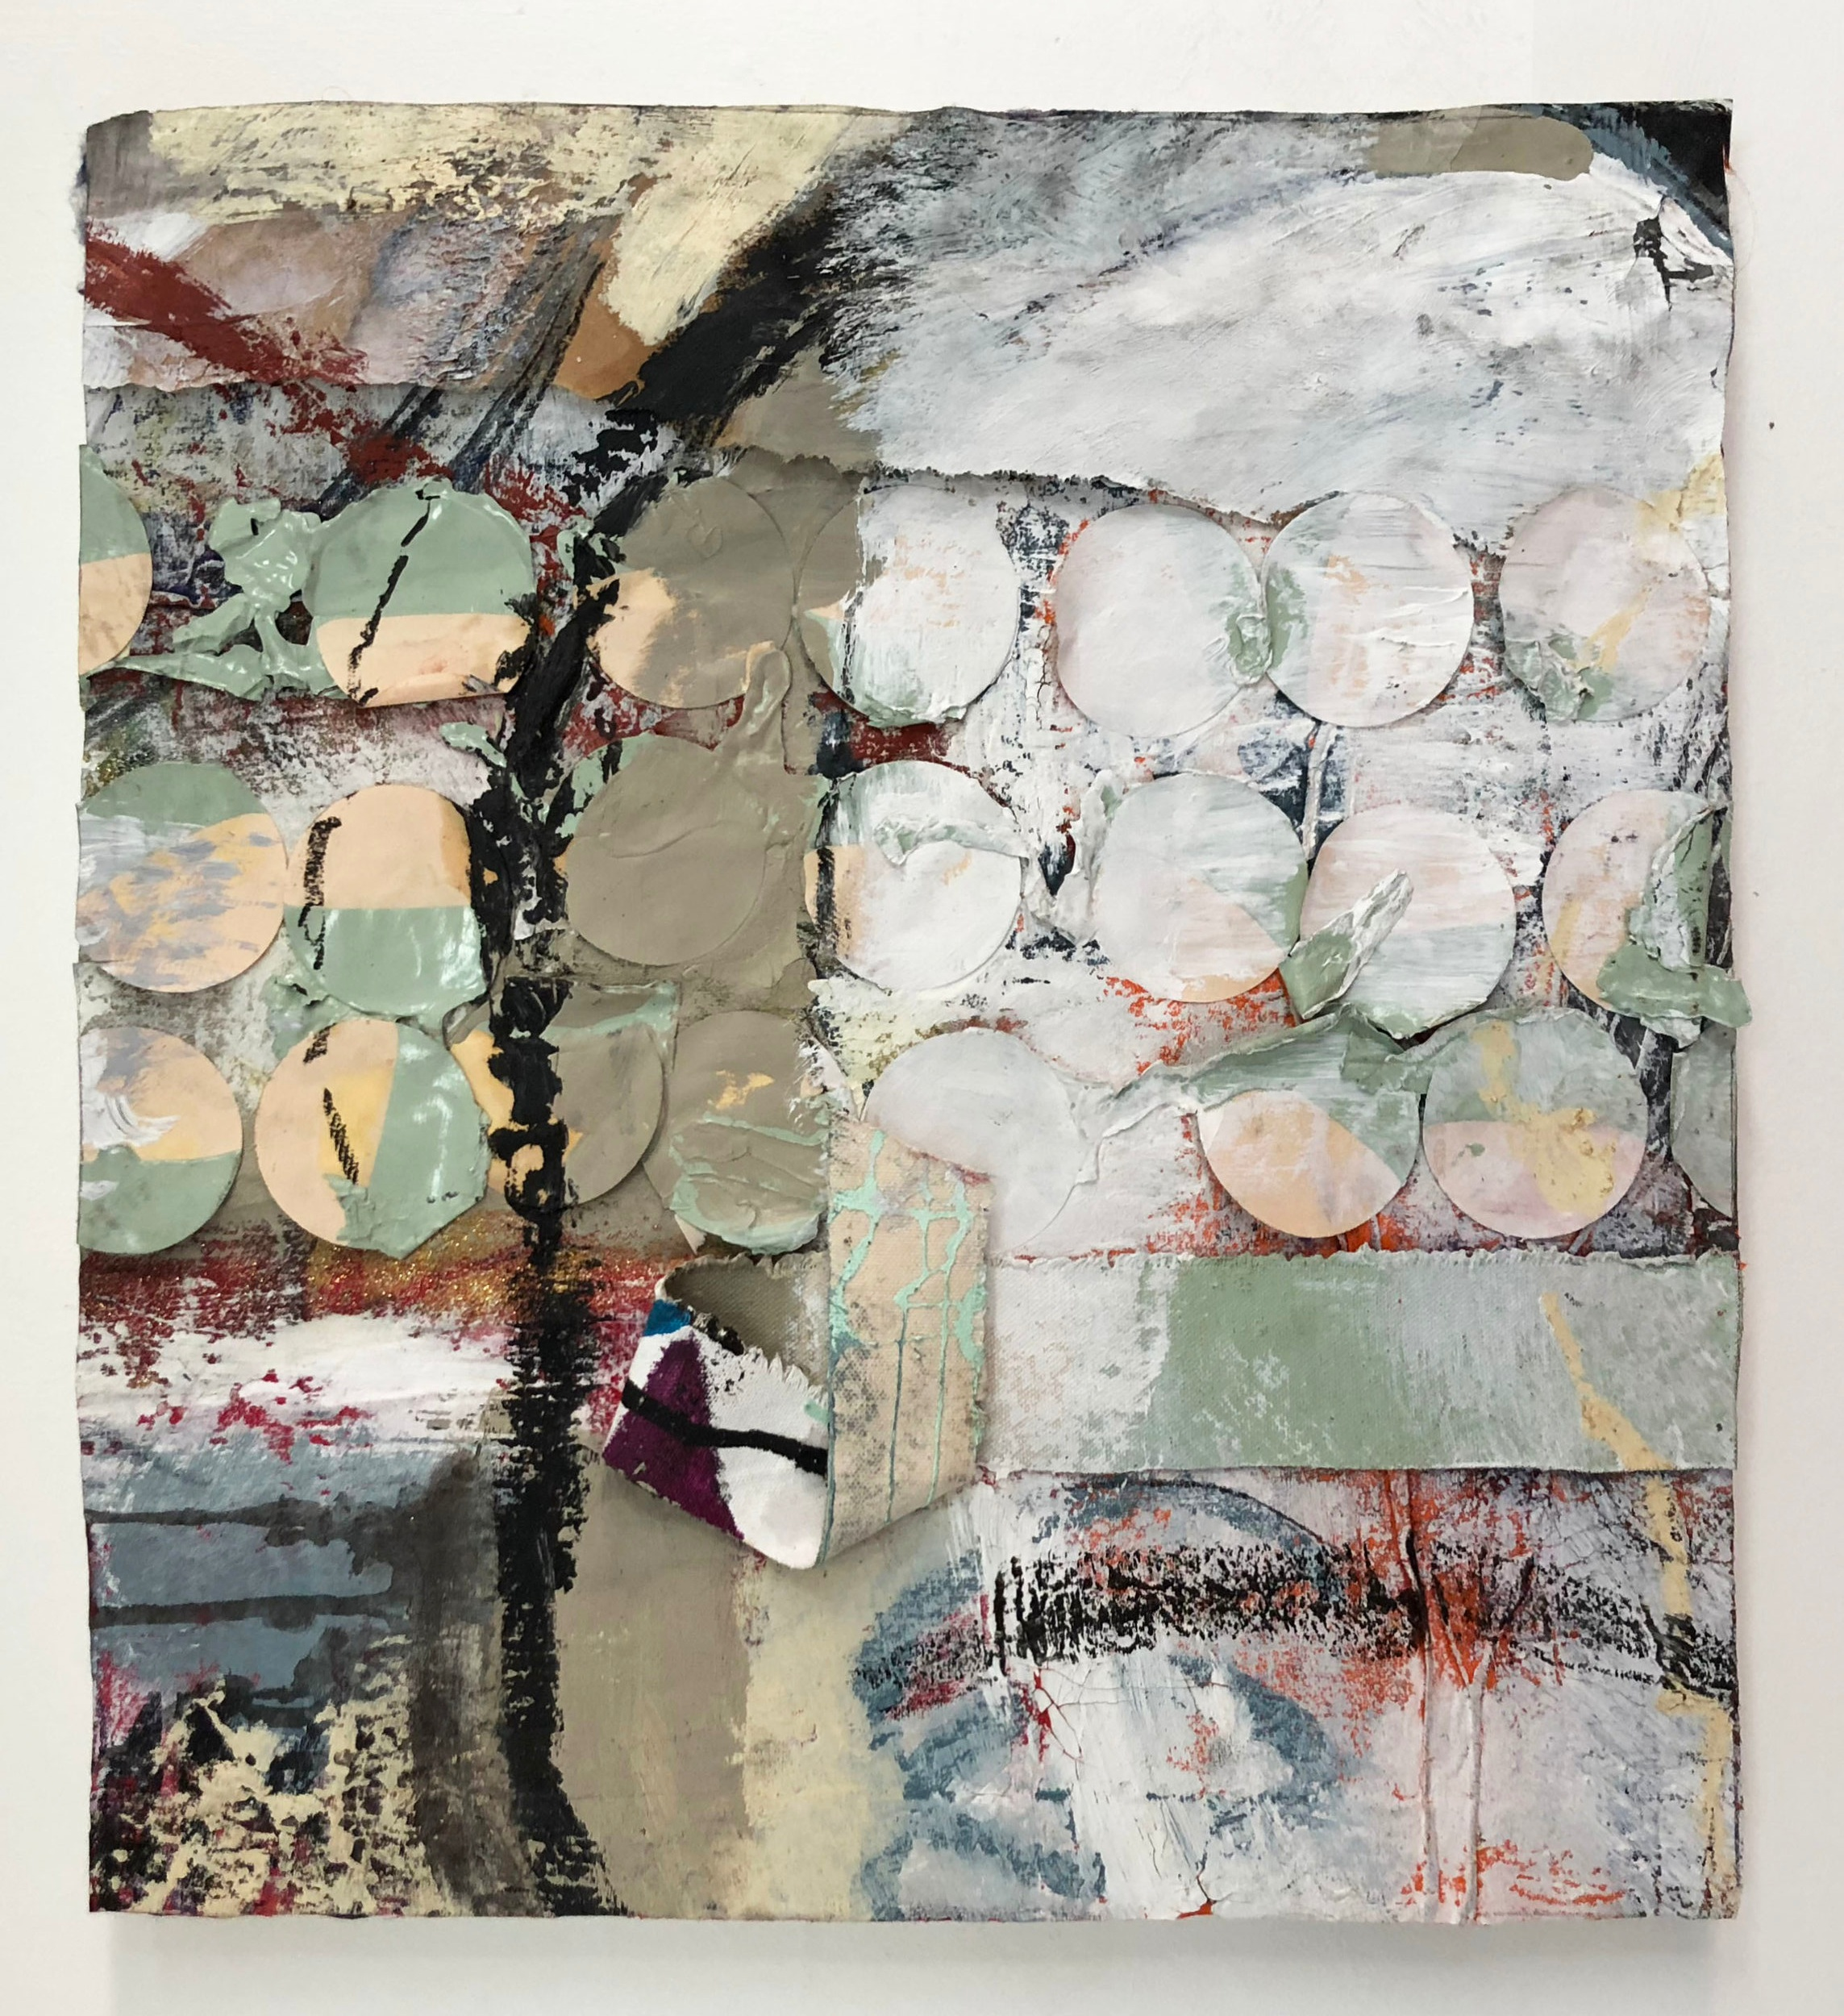 Circles Standing in Line,  2016-18, Collage, charcoal, acrylic, oil, enamel, ink, glitter, canvas on panel